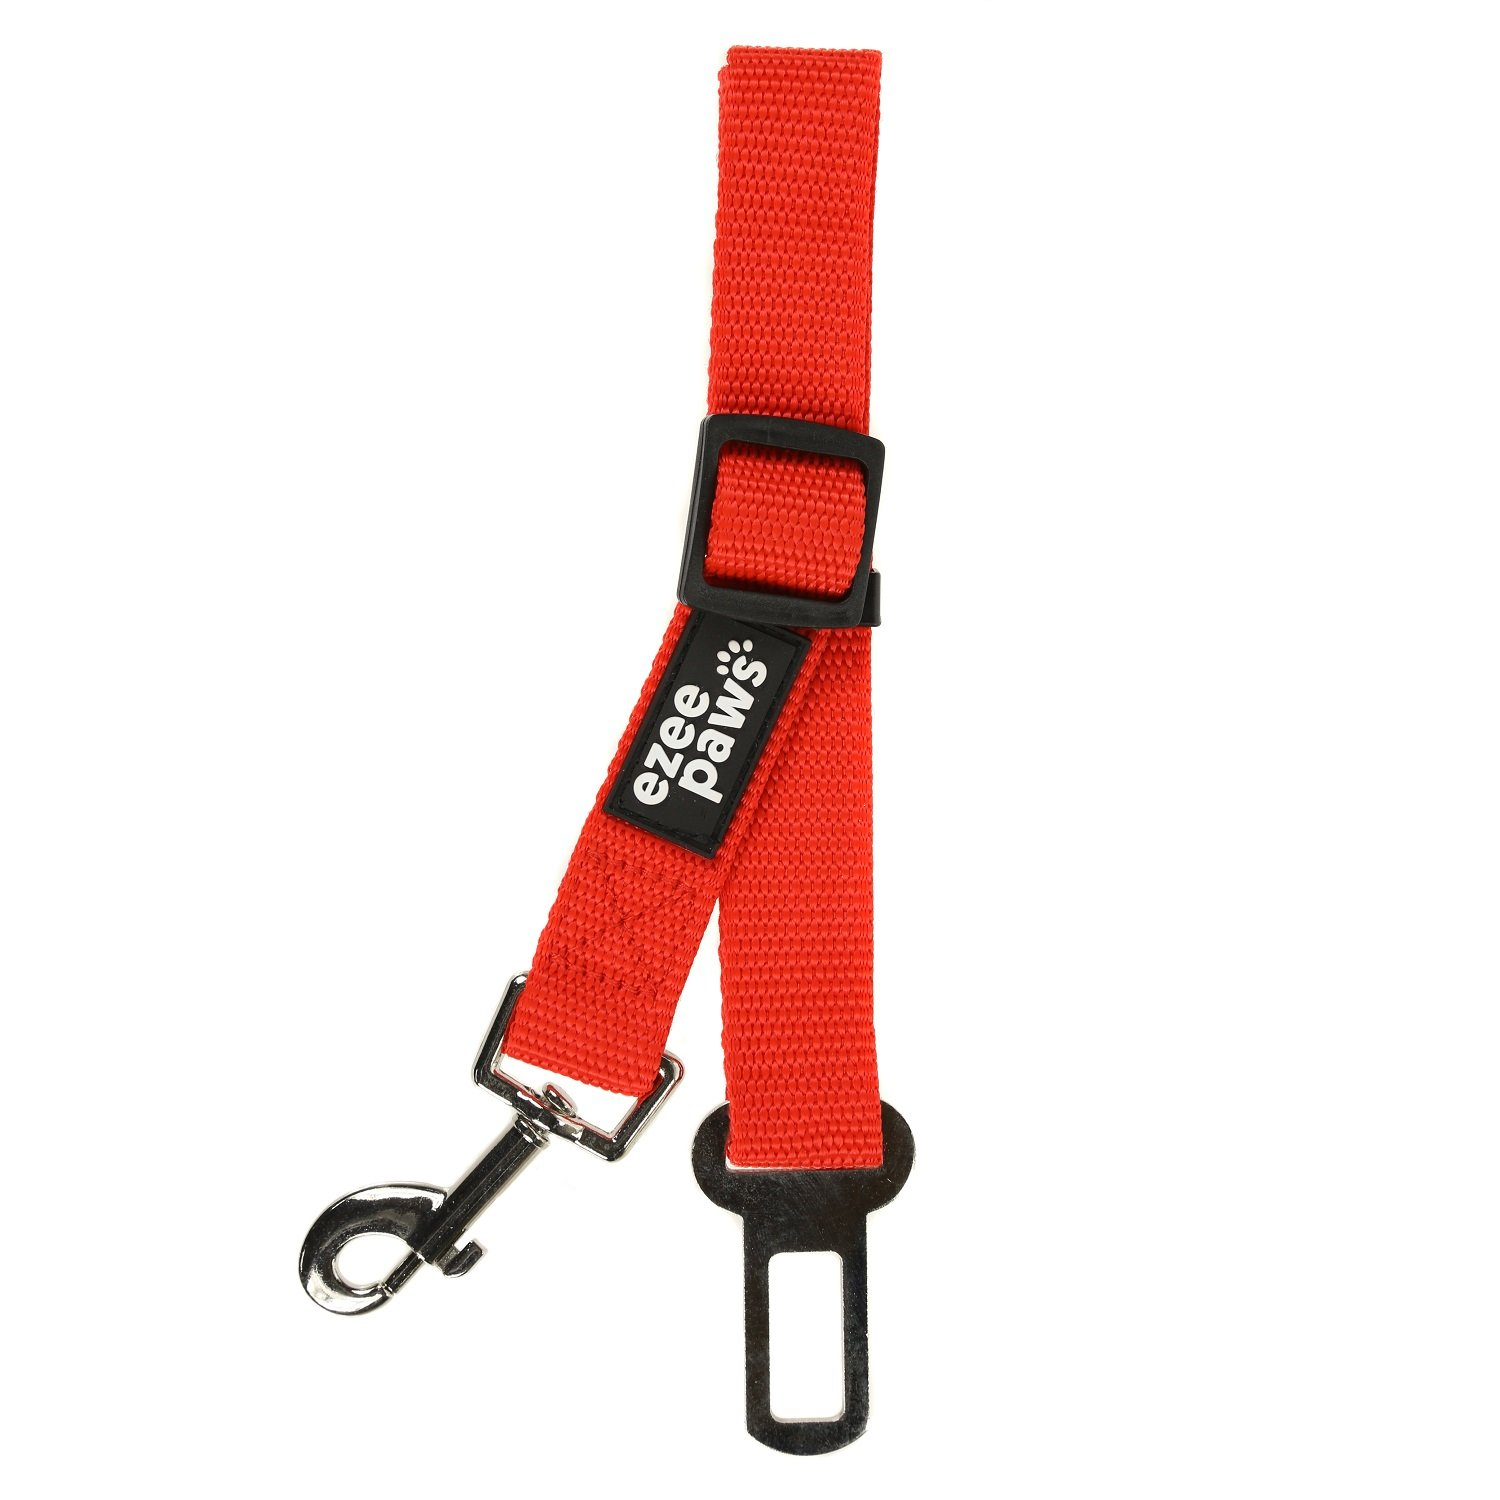 Black-Red 2-Pack Ezee Paws Dog Seat Belt Safety Harness Lead for Car Vehicle Adjustable